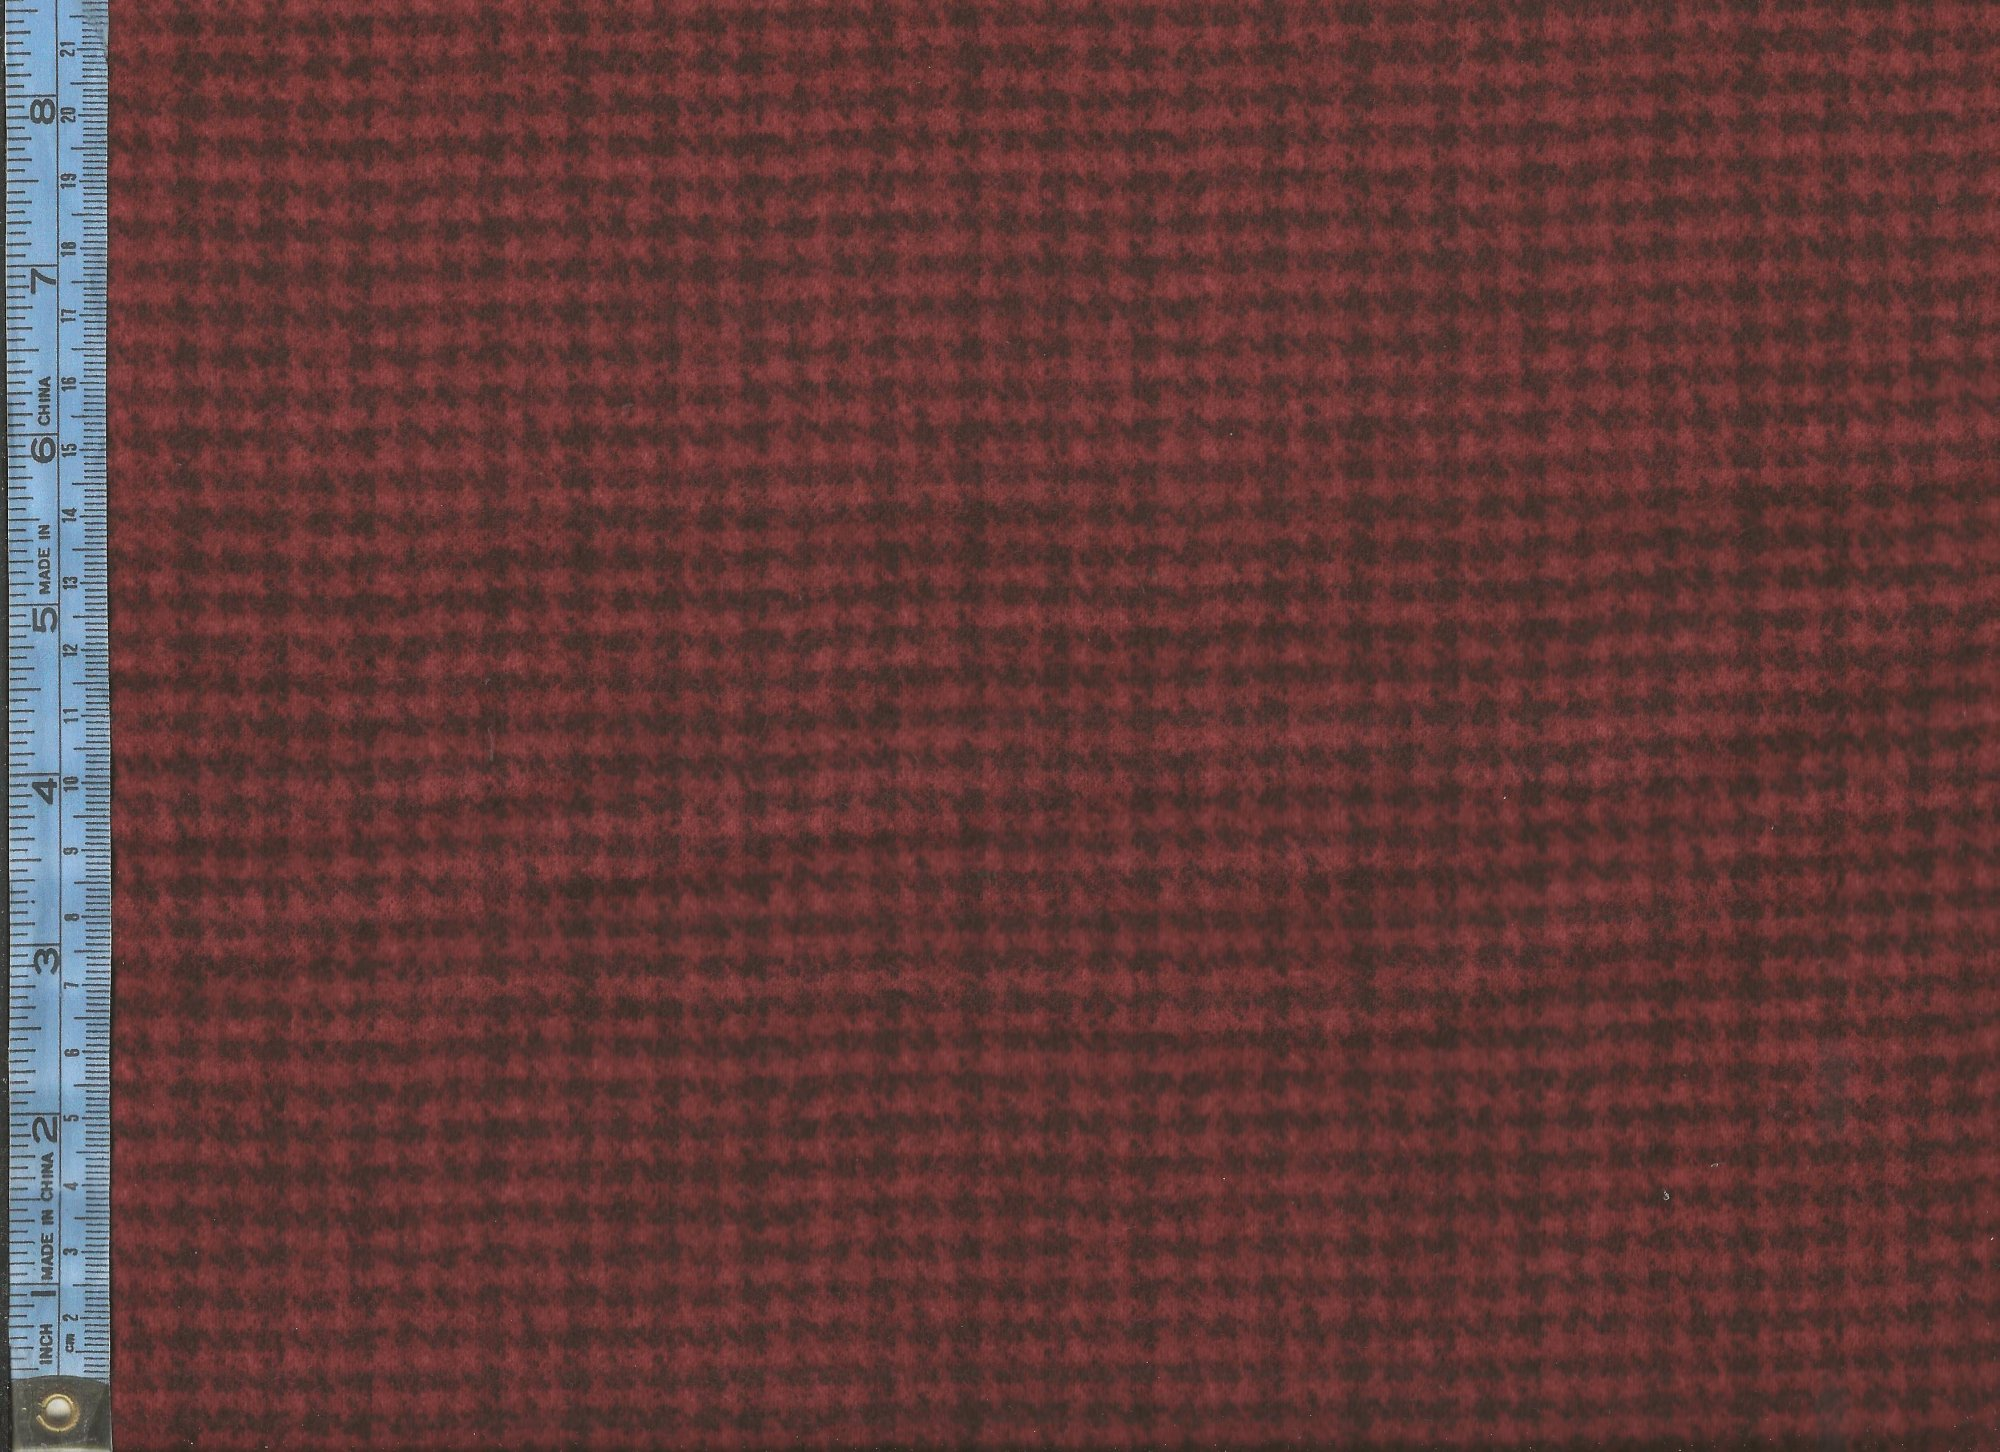 Woolies Flannel - (MASF18503-RJ ) dark red houndstooth